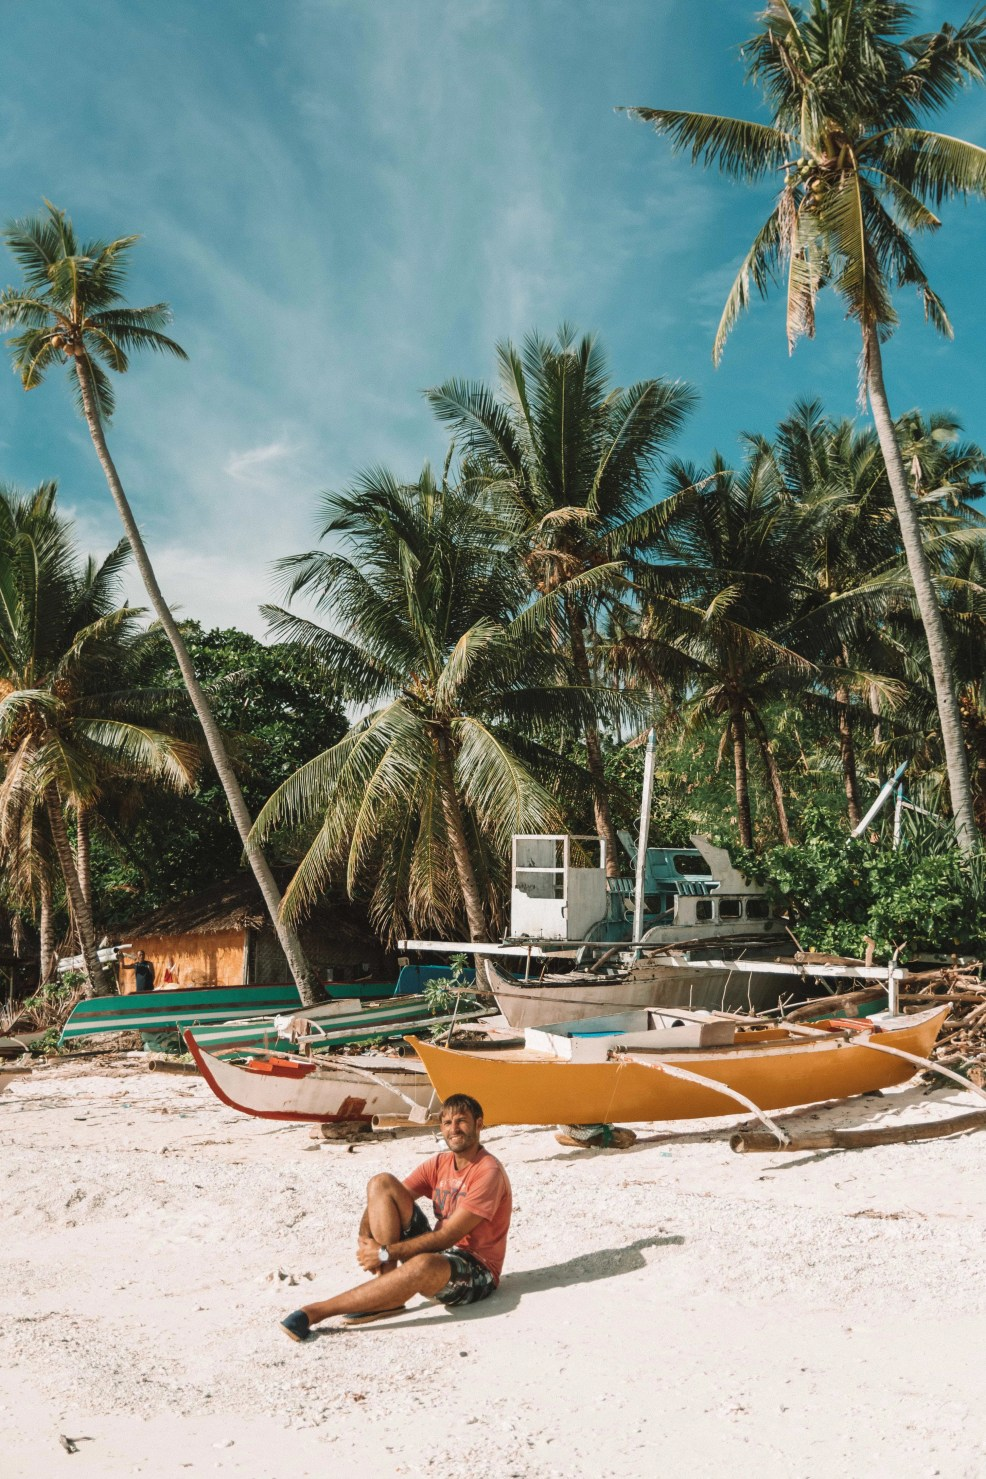 things to know before traveling to the philippines,  best places to visit in the philippines, tourist spots in the philippines, places to visit in the philippines for couples, Siquijor the Philippines